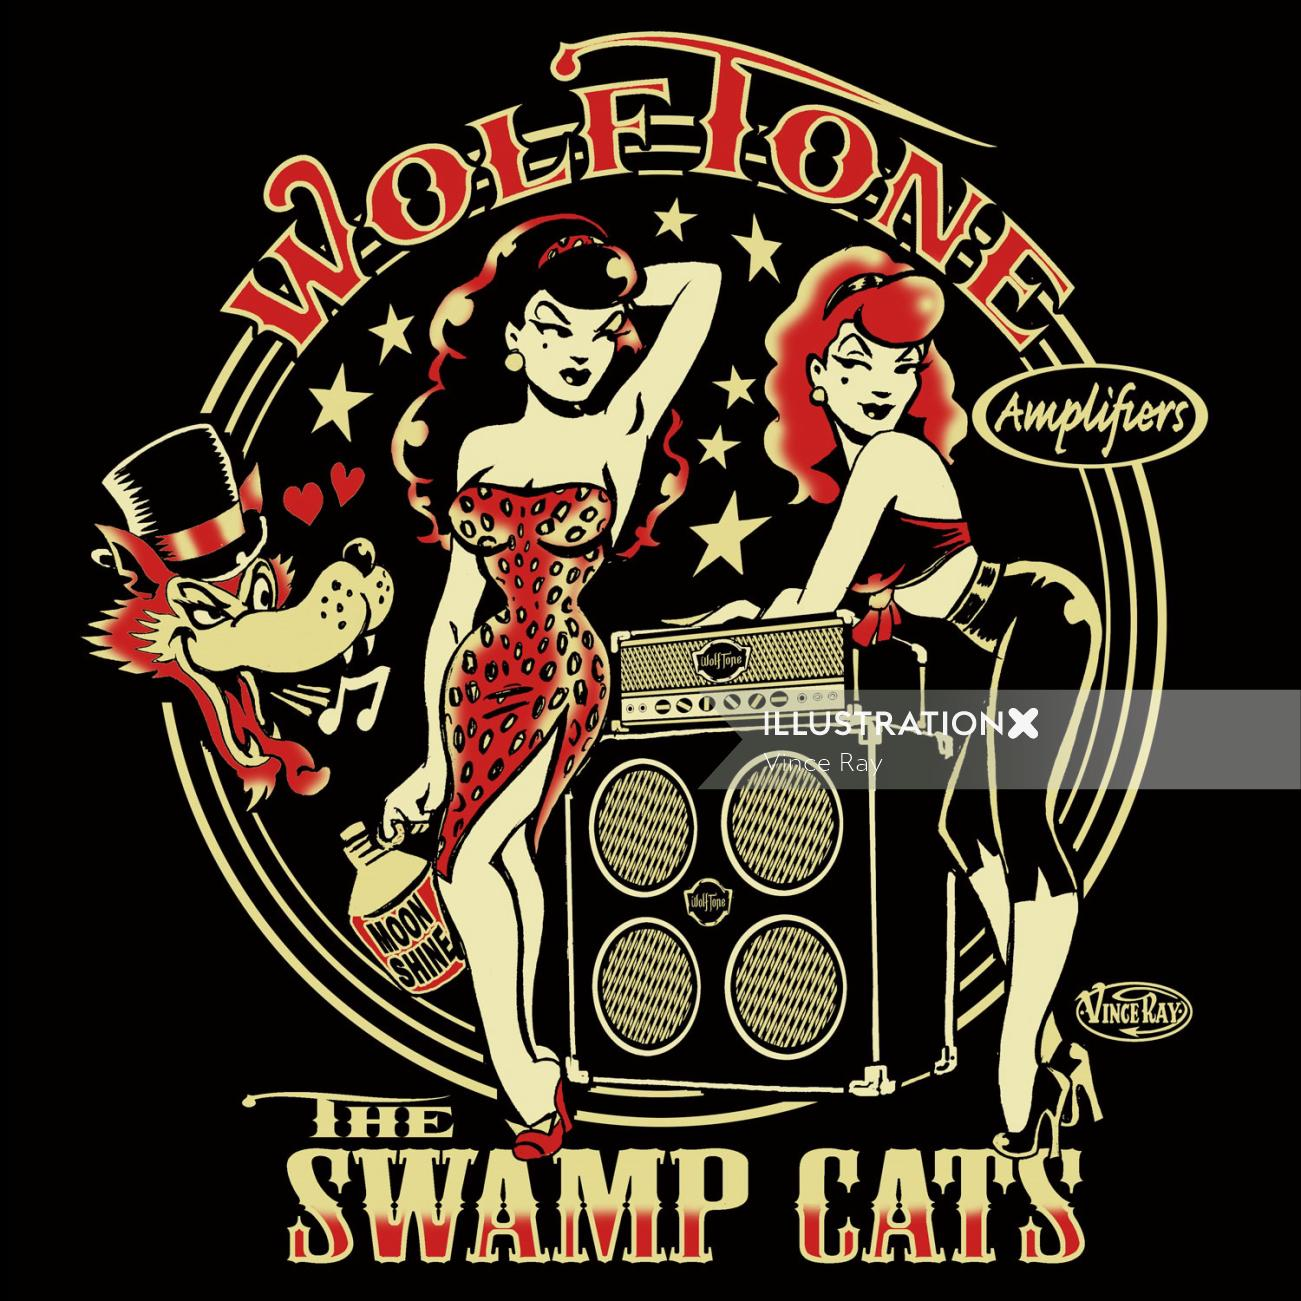 Low brow art for Wolf tone by Vince Ray